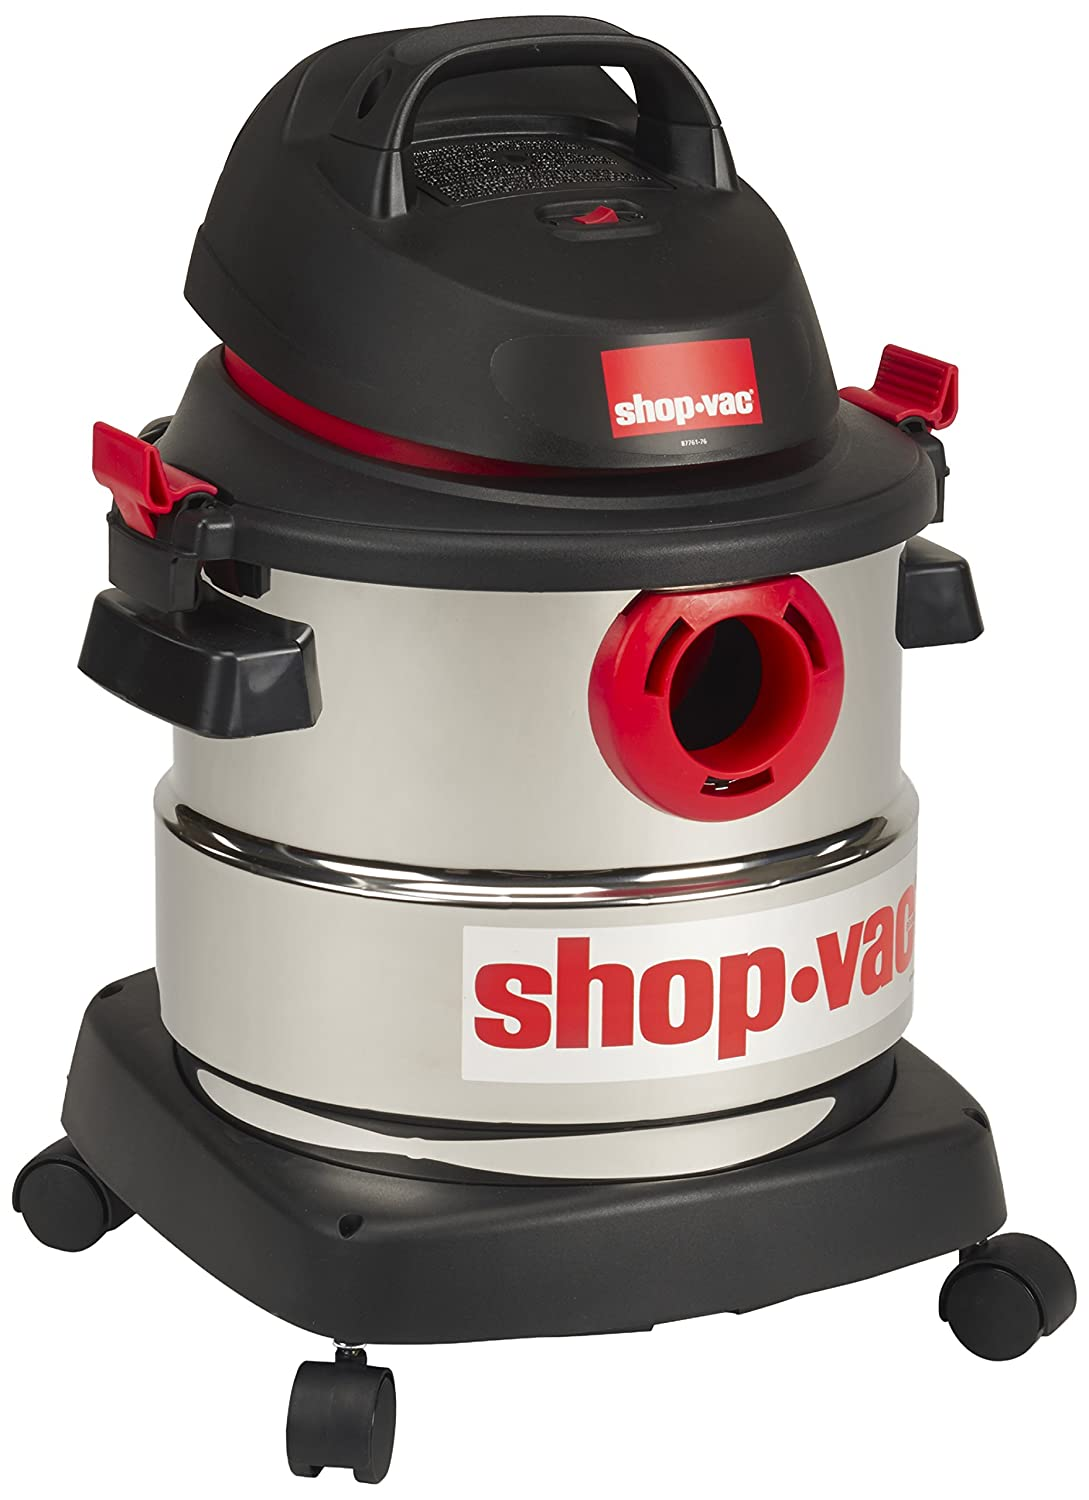 Shop-vac 4.5 HP Wet Dry Stainless Steel Vacuum Cleaner